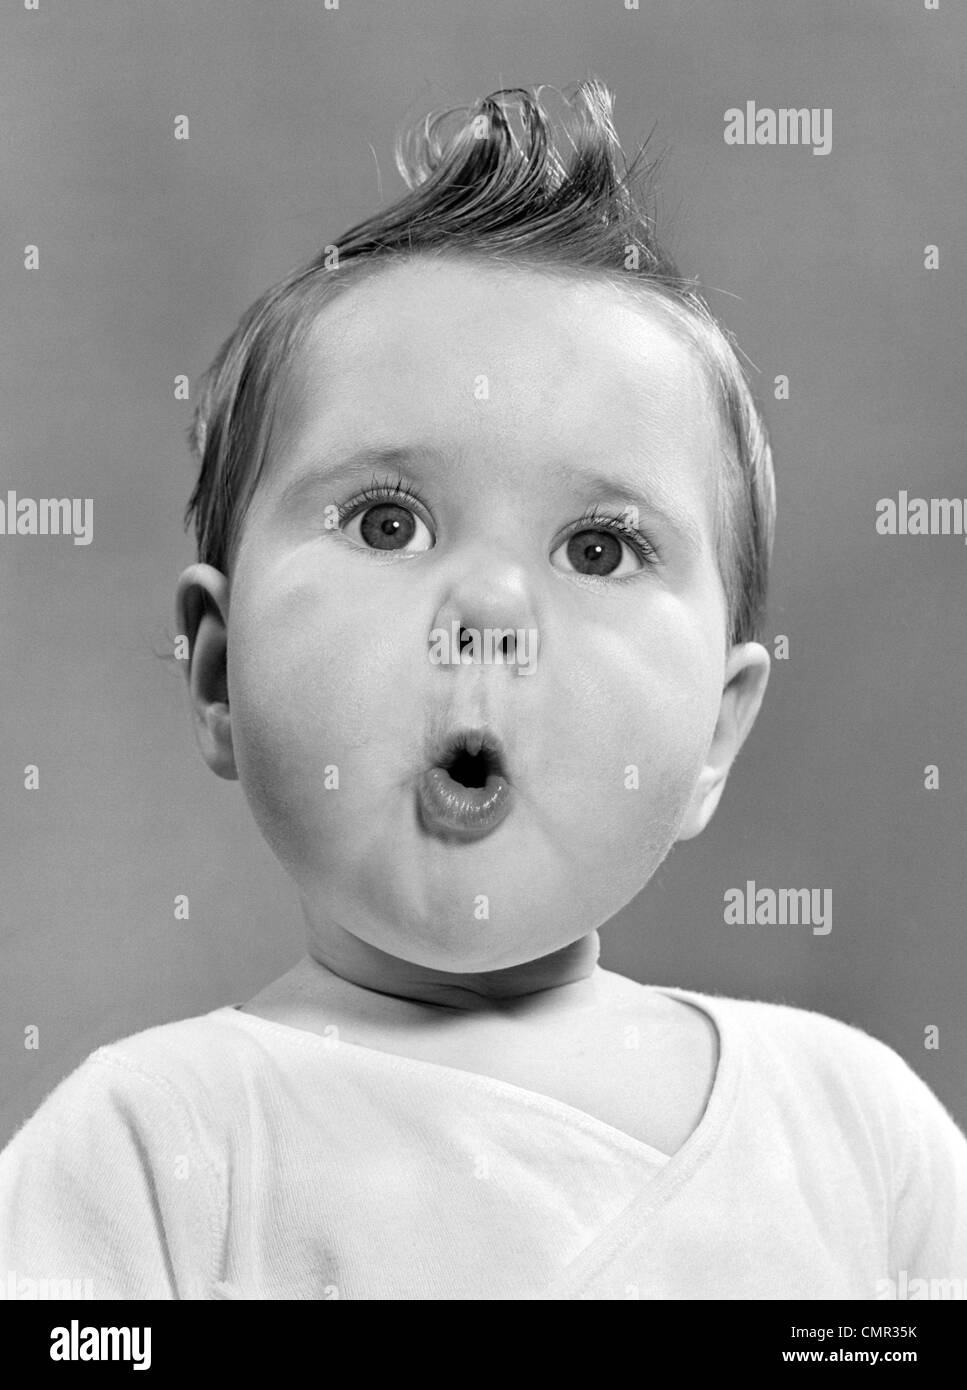 1950s BABY WITH SURPRISED EXPRESSION - Stock Image